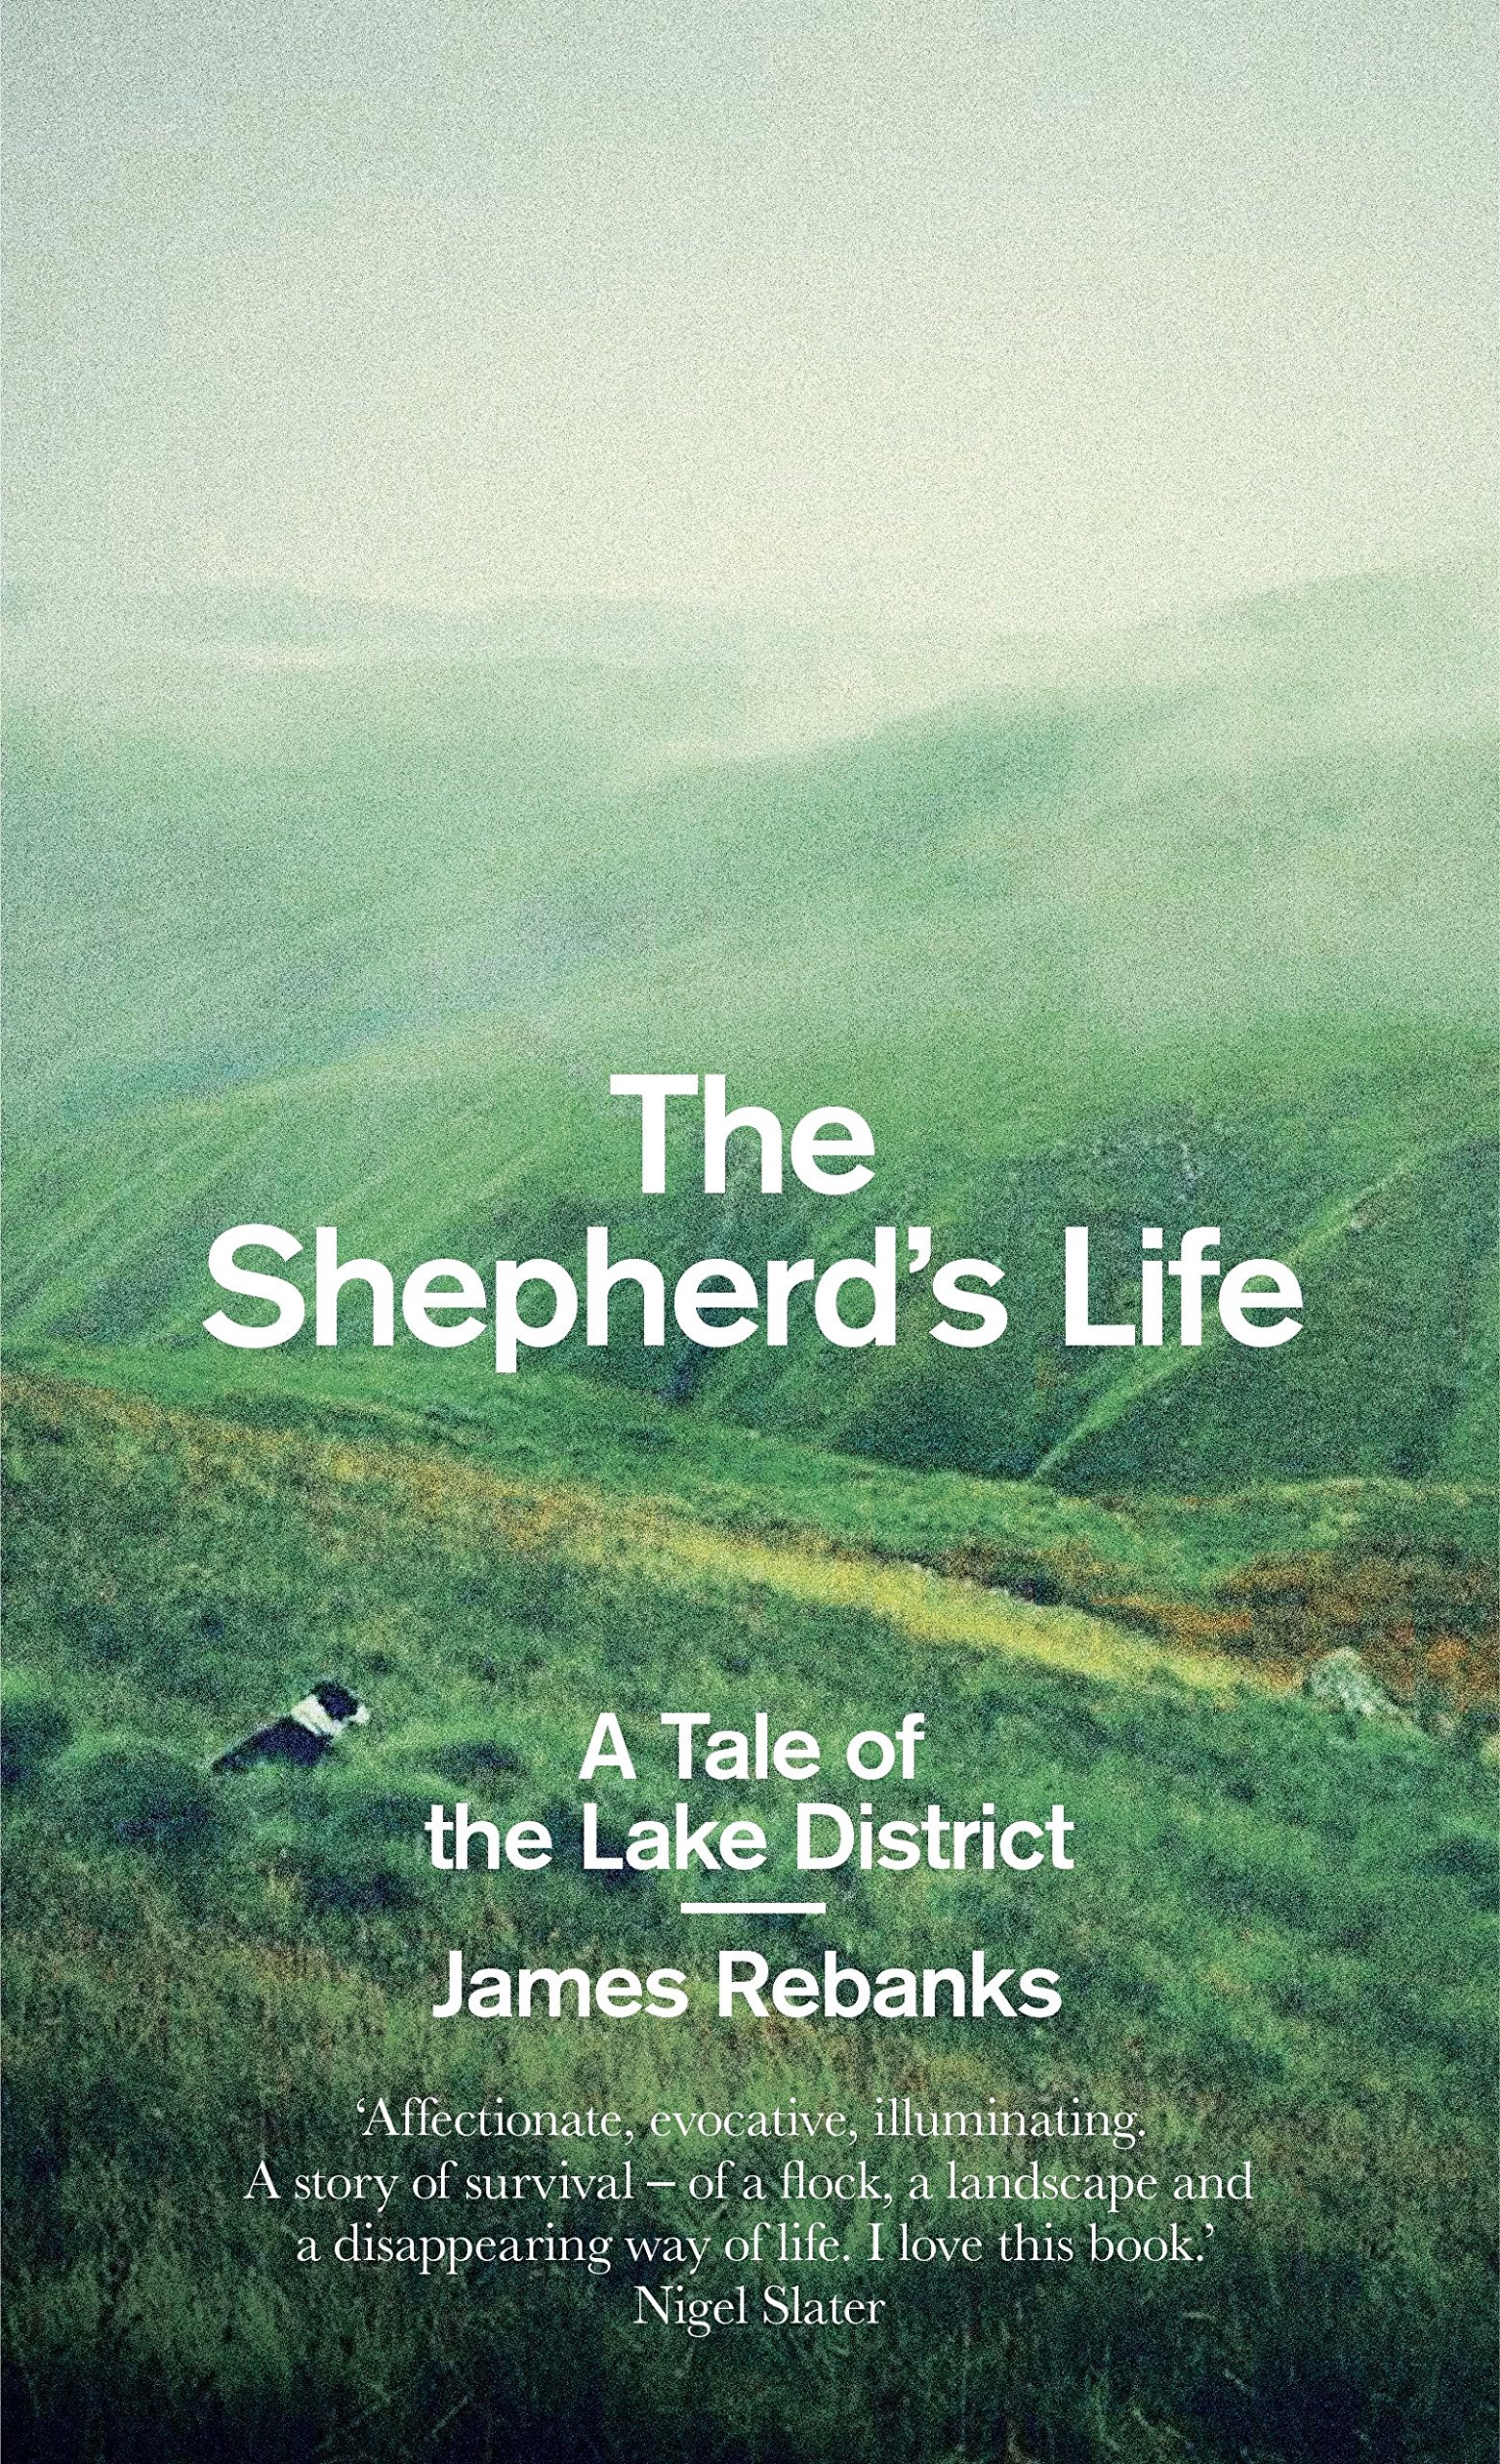 The Shepherd's Life: A Tale Of The Lake District: Amazon: James  Rebanks: 9781846148545: Books